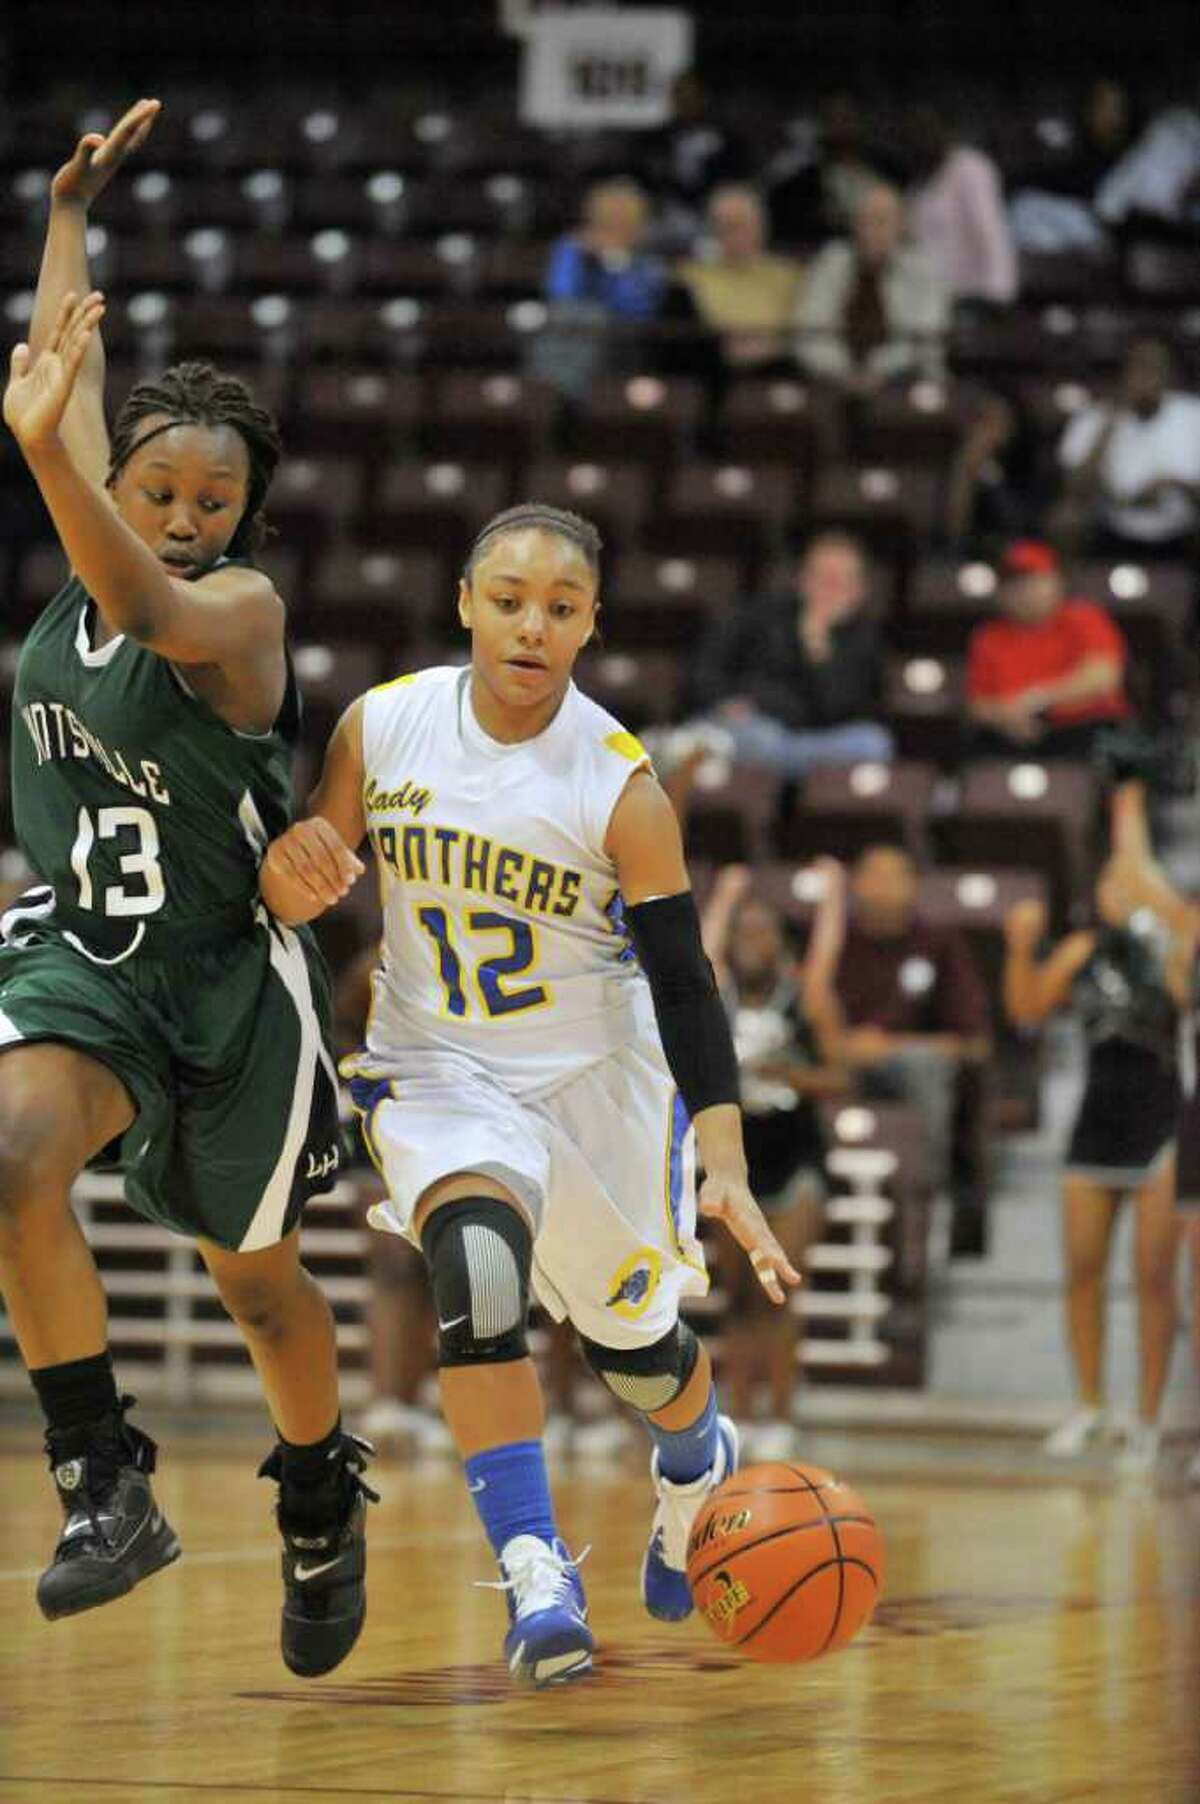 Ozen guard Asia Booker races up court against Huntsville defender Ceidra Coleman in the final minutes of the second half of their Class 4A regional final playoff matchup at the Aldine Campbell Center in Aldine. Saturday, February 26, 2011. Valentino Mauricio/The Enterprise